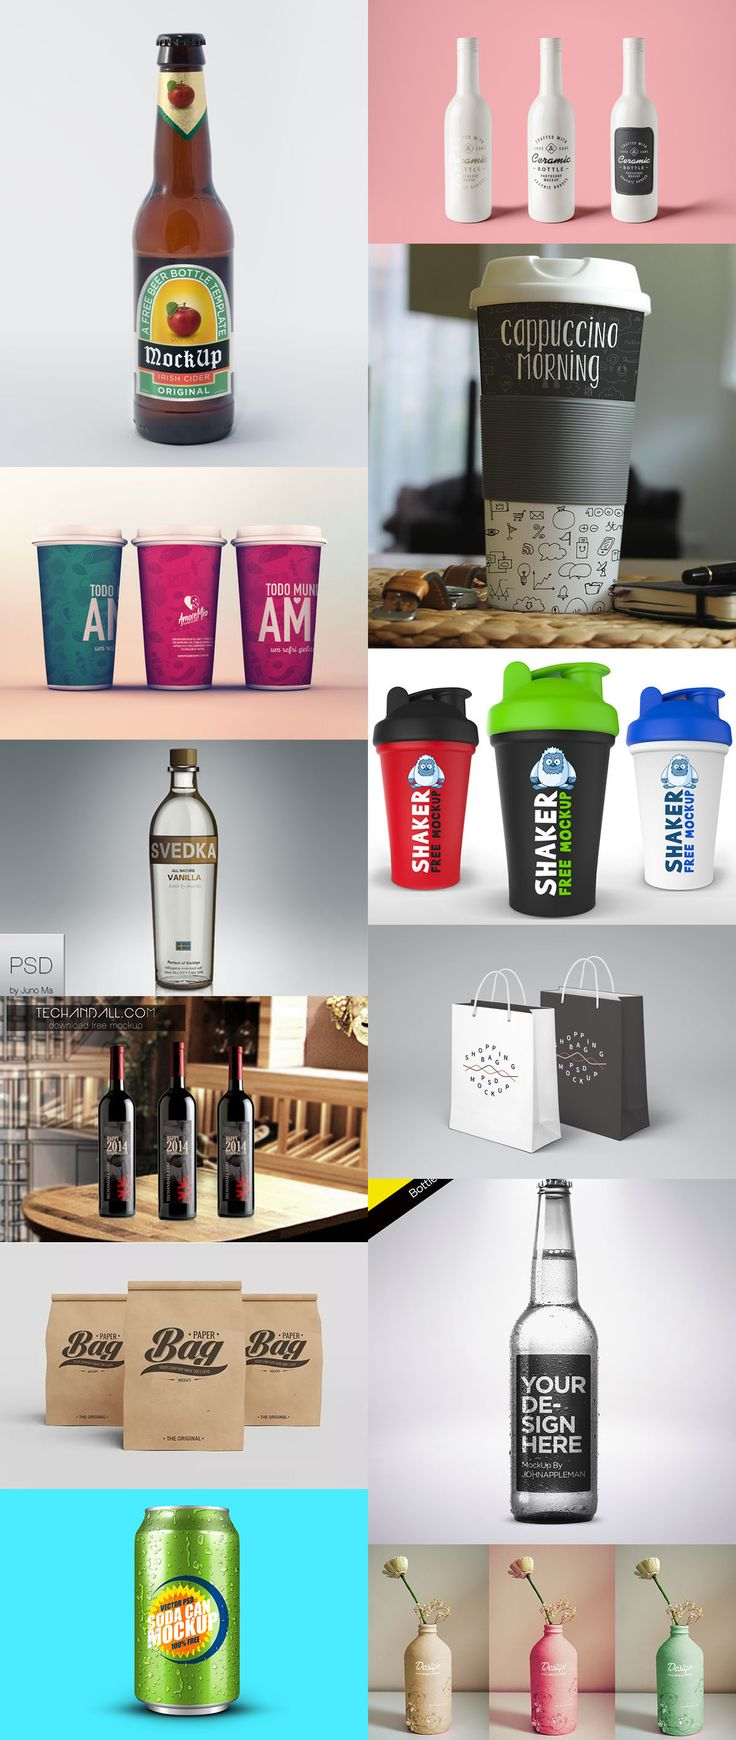 free  product  packaging  mock-ups  to present you designs.